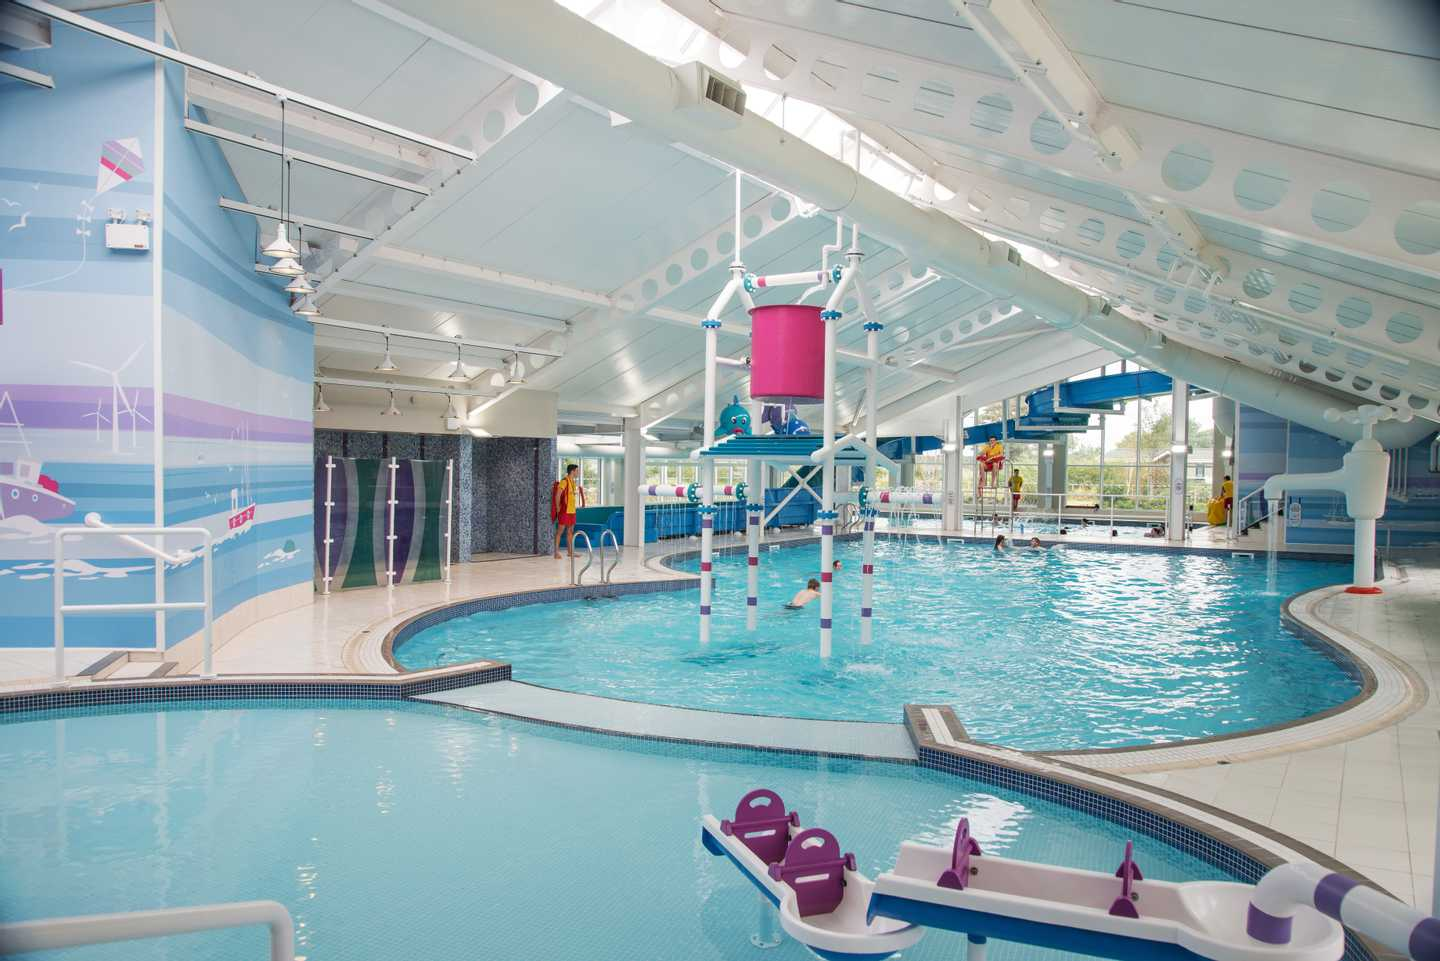 Sports fun water activities at seton sands haven - House with swimming pool for sale scotland ...